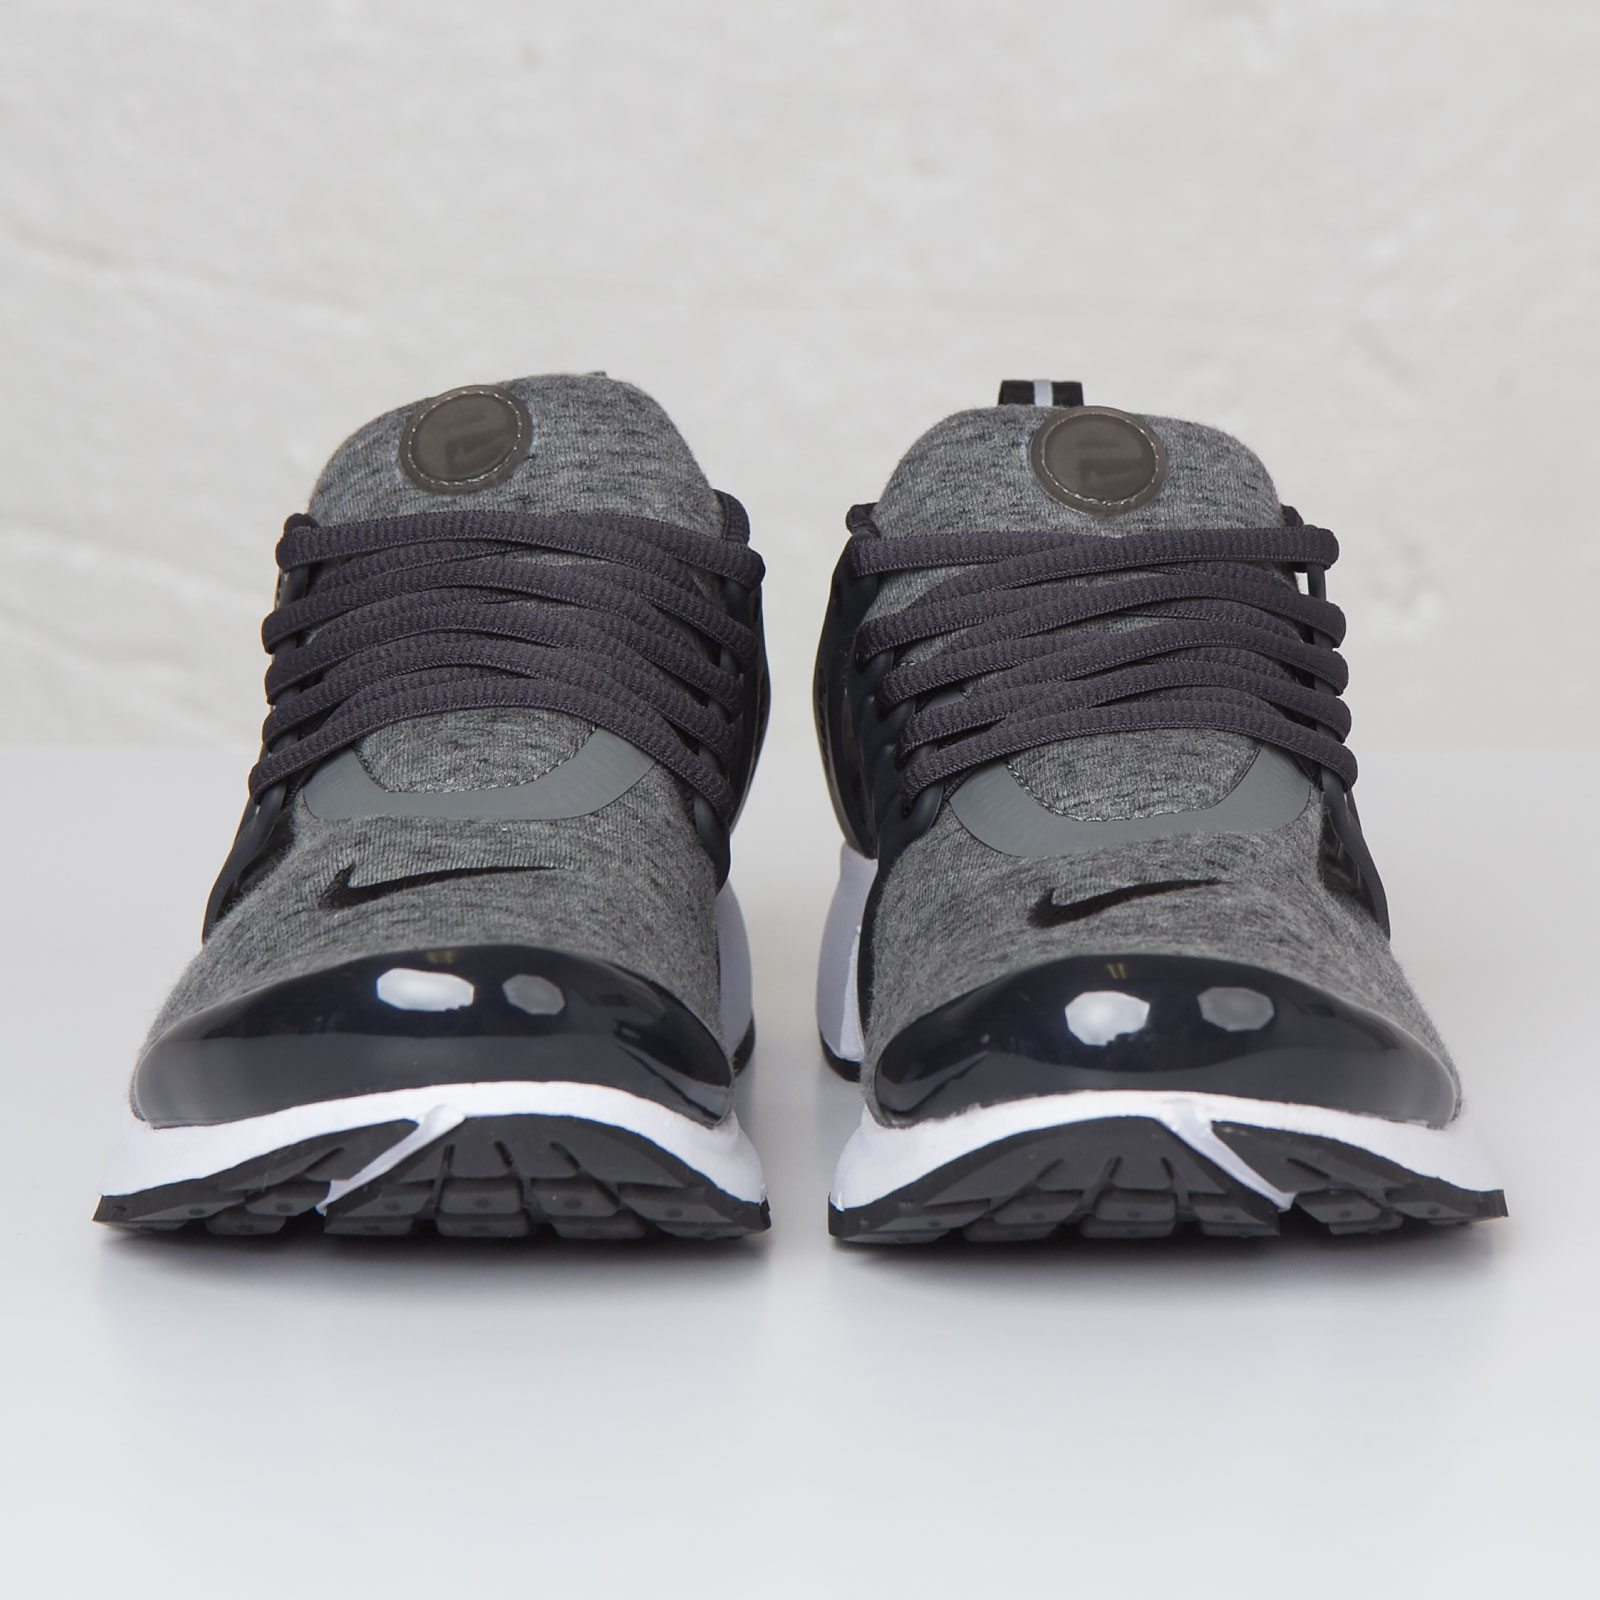 quality design 45efc cfb33 ... shop nike air presto fleece nike air presto fleece 1e5a0 a3643